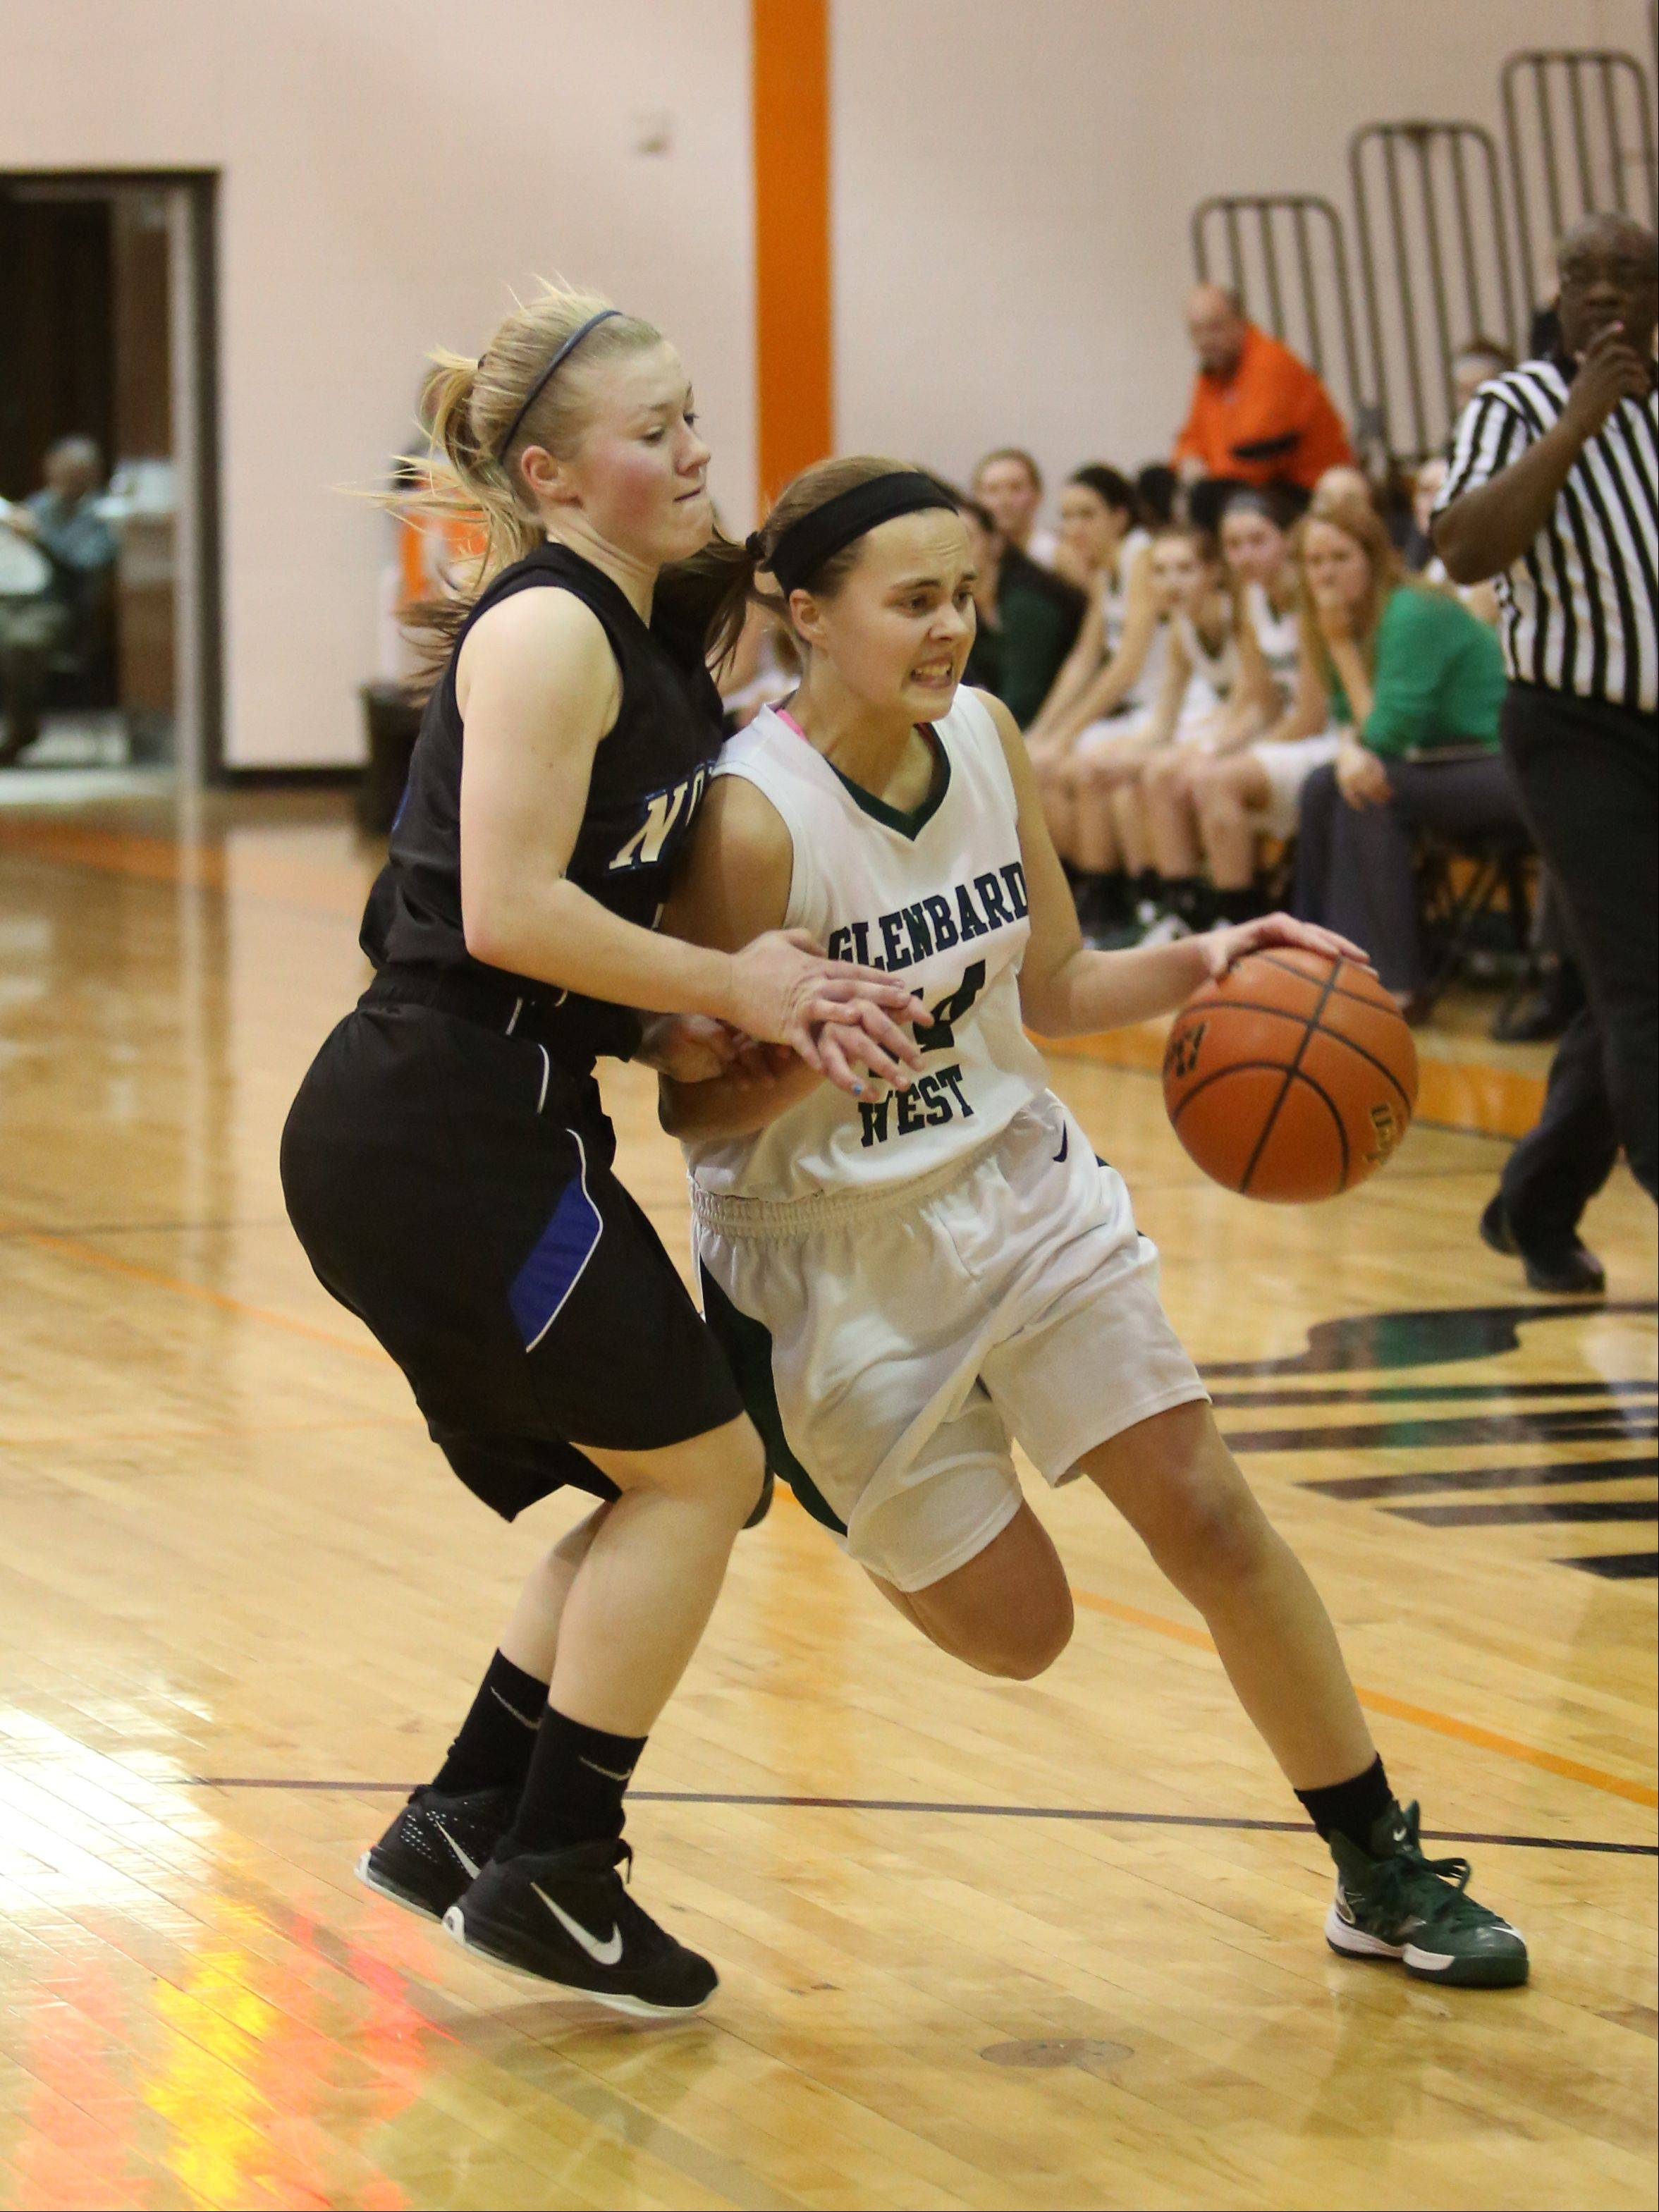 Glenbard West played St. Charles North Monday night for girls basketball Class 4A regional quarterfinal action at Wheaton Warrenville South in Wheaton.